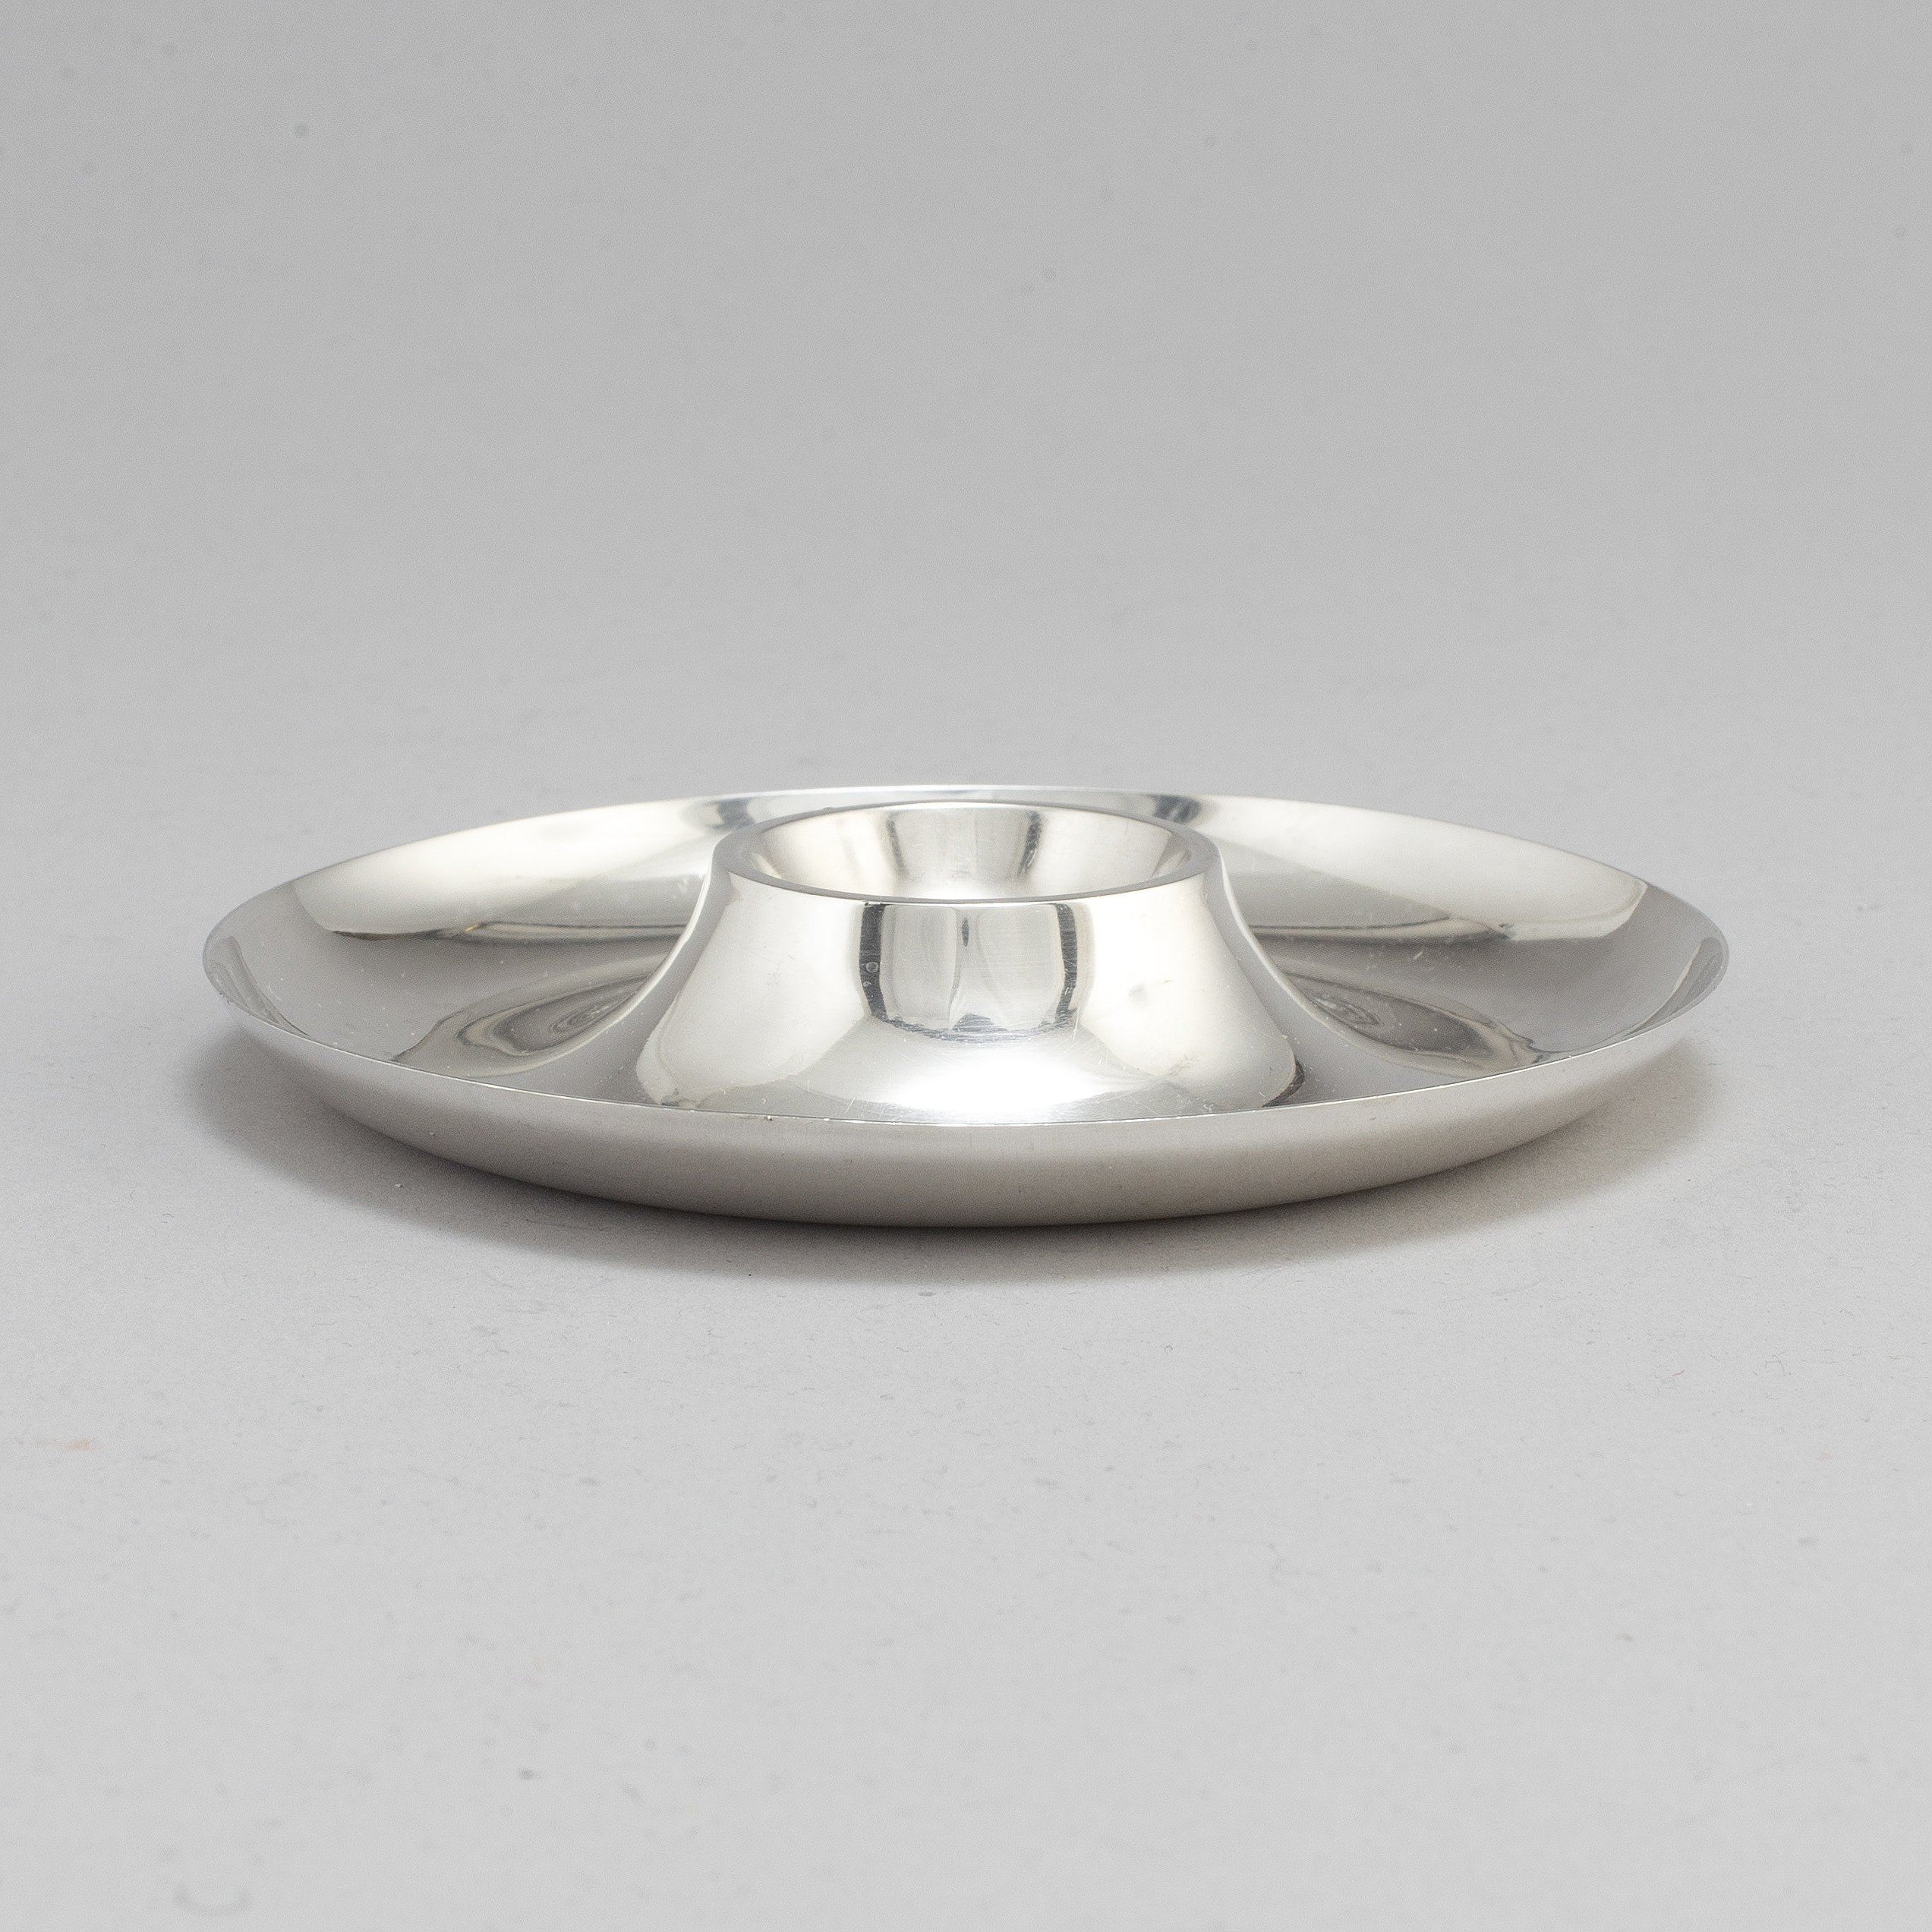 ada03738e4d6 WIWEN NILSSON, a sterling silver egg cup, Lund 1945. - Bukowskis